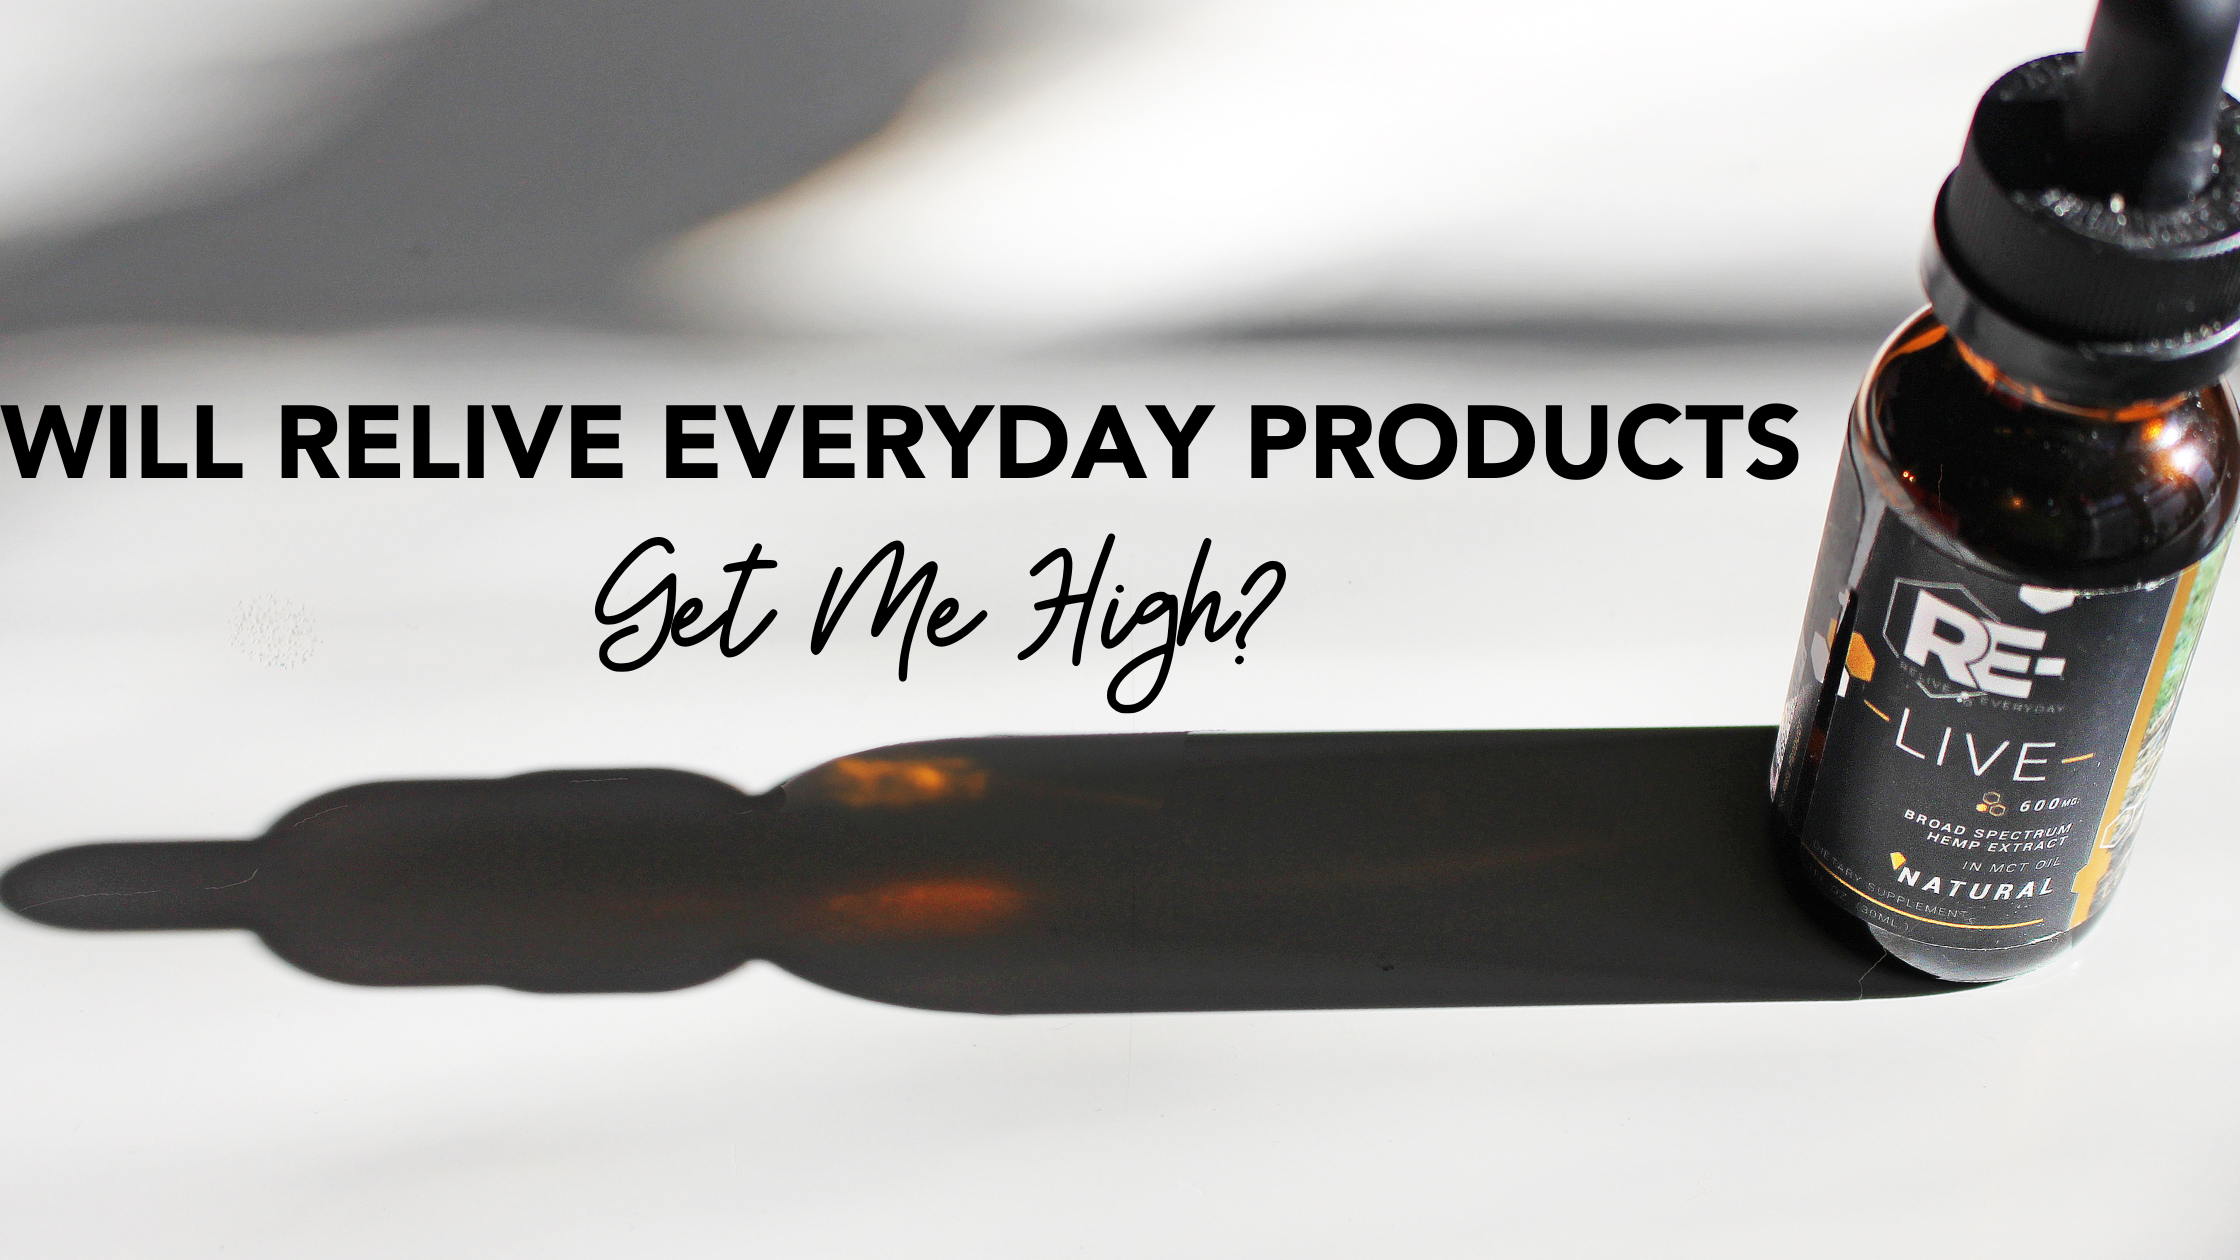 WILL RELIVE EVERYDAY PRODUCTS GET ME HIGH Blog Banner